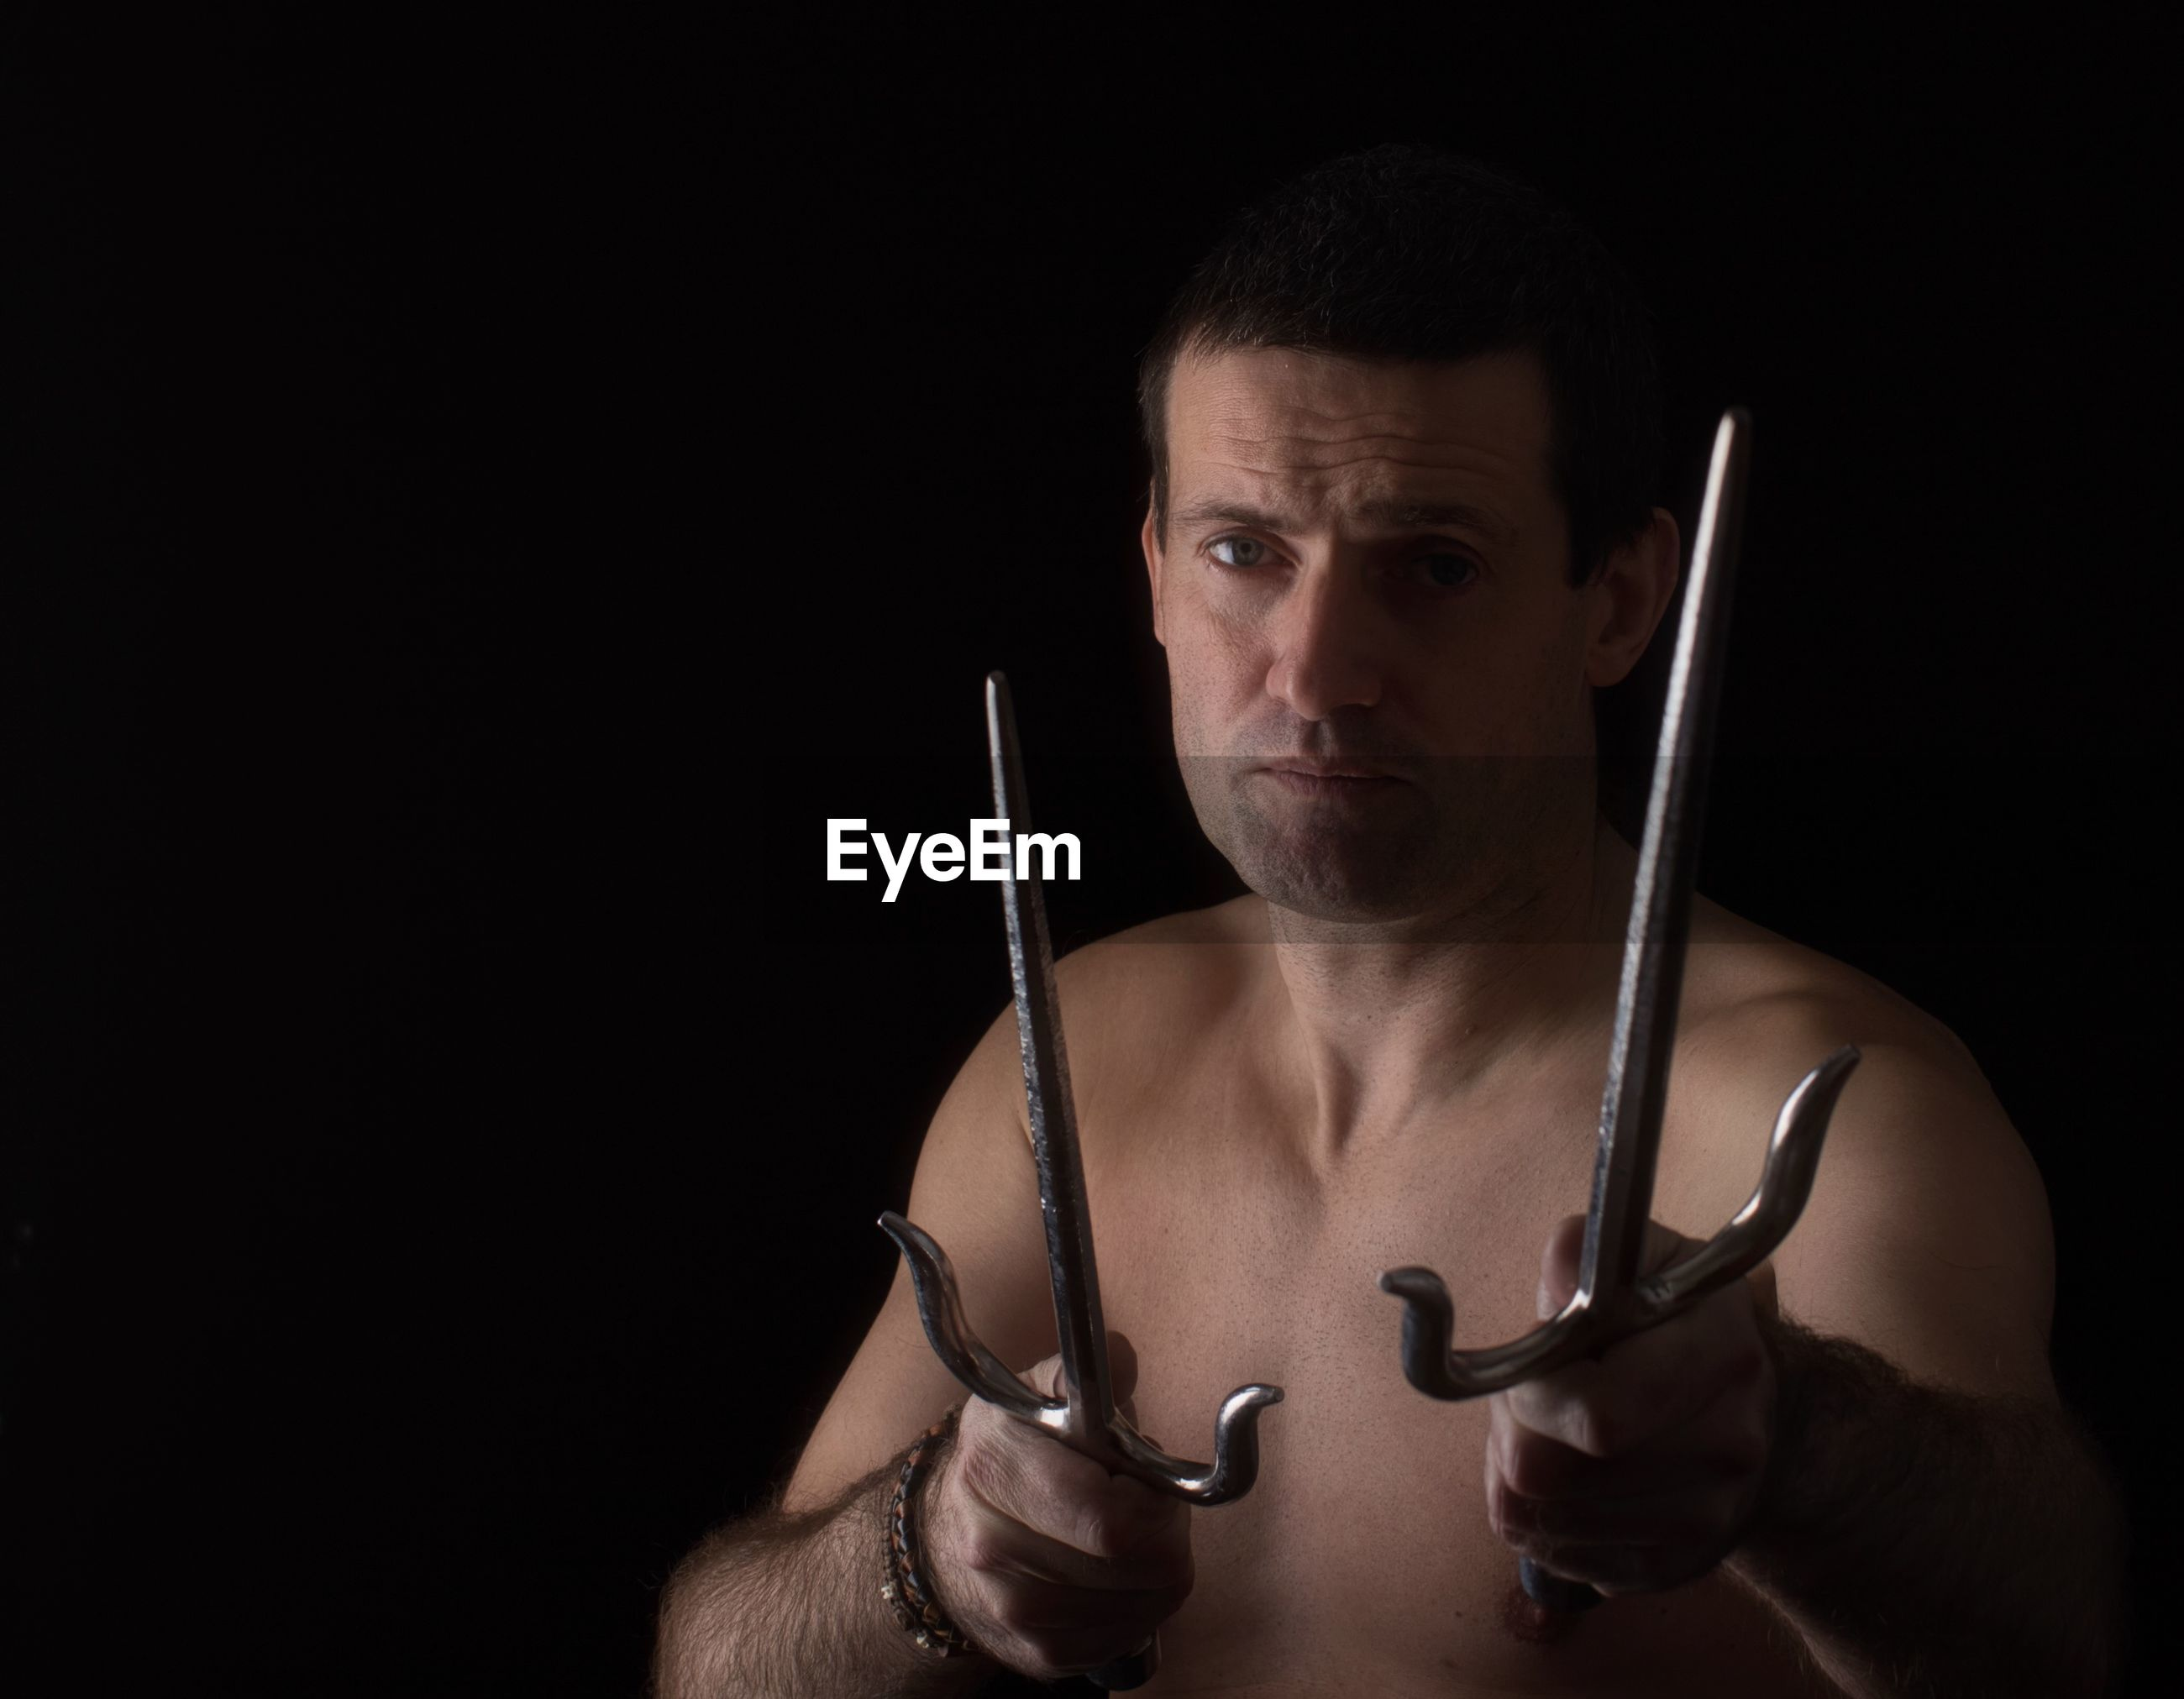 Portrait of shirtless man holding swords over black background